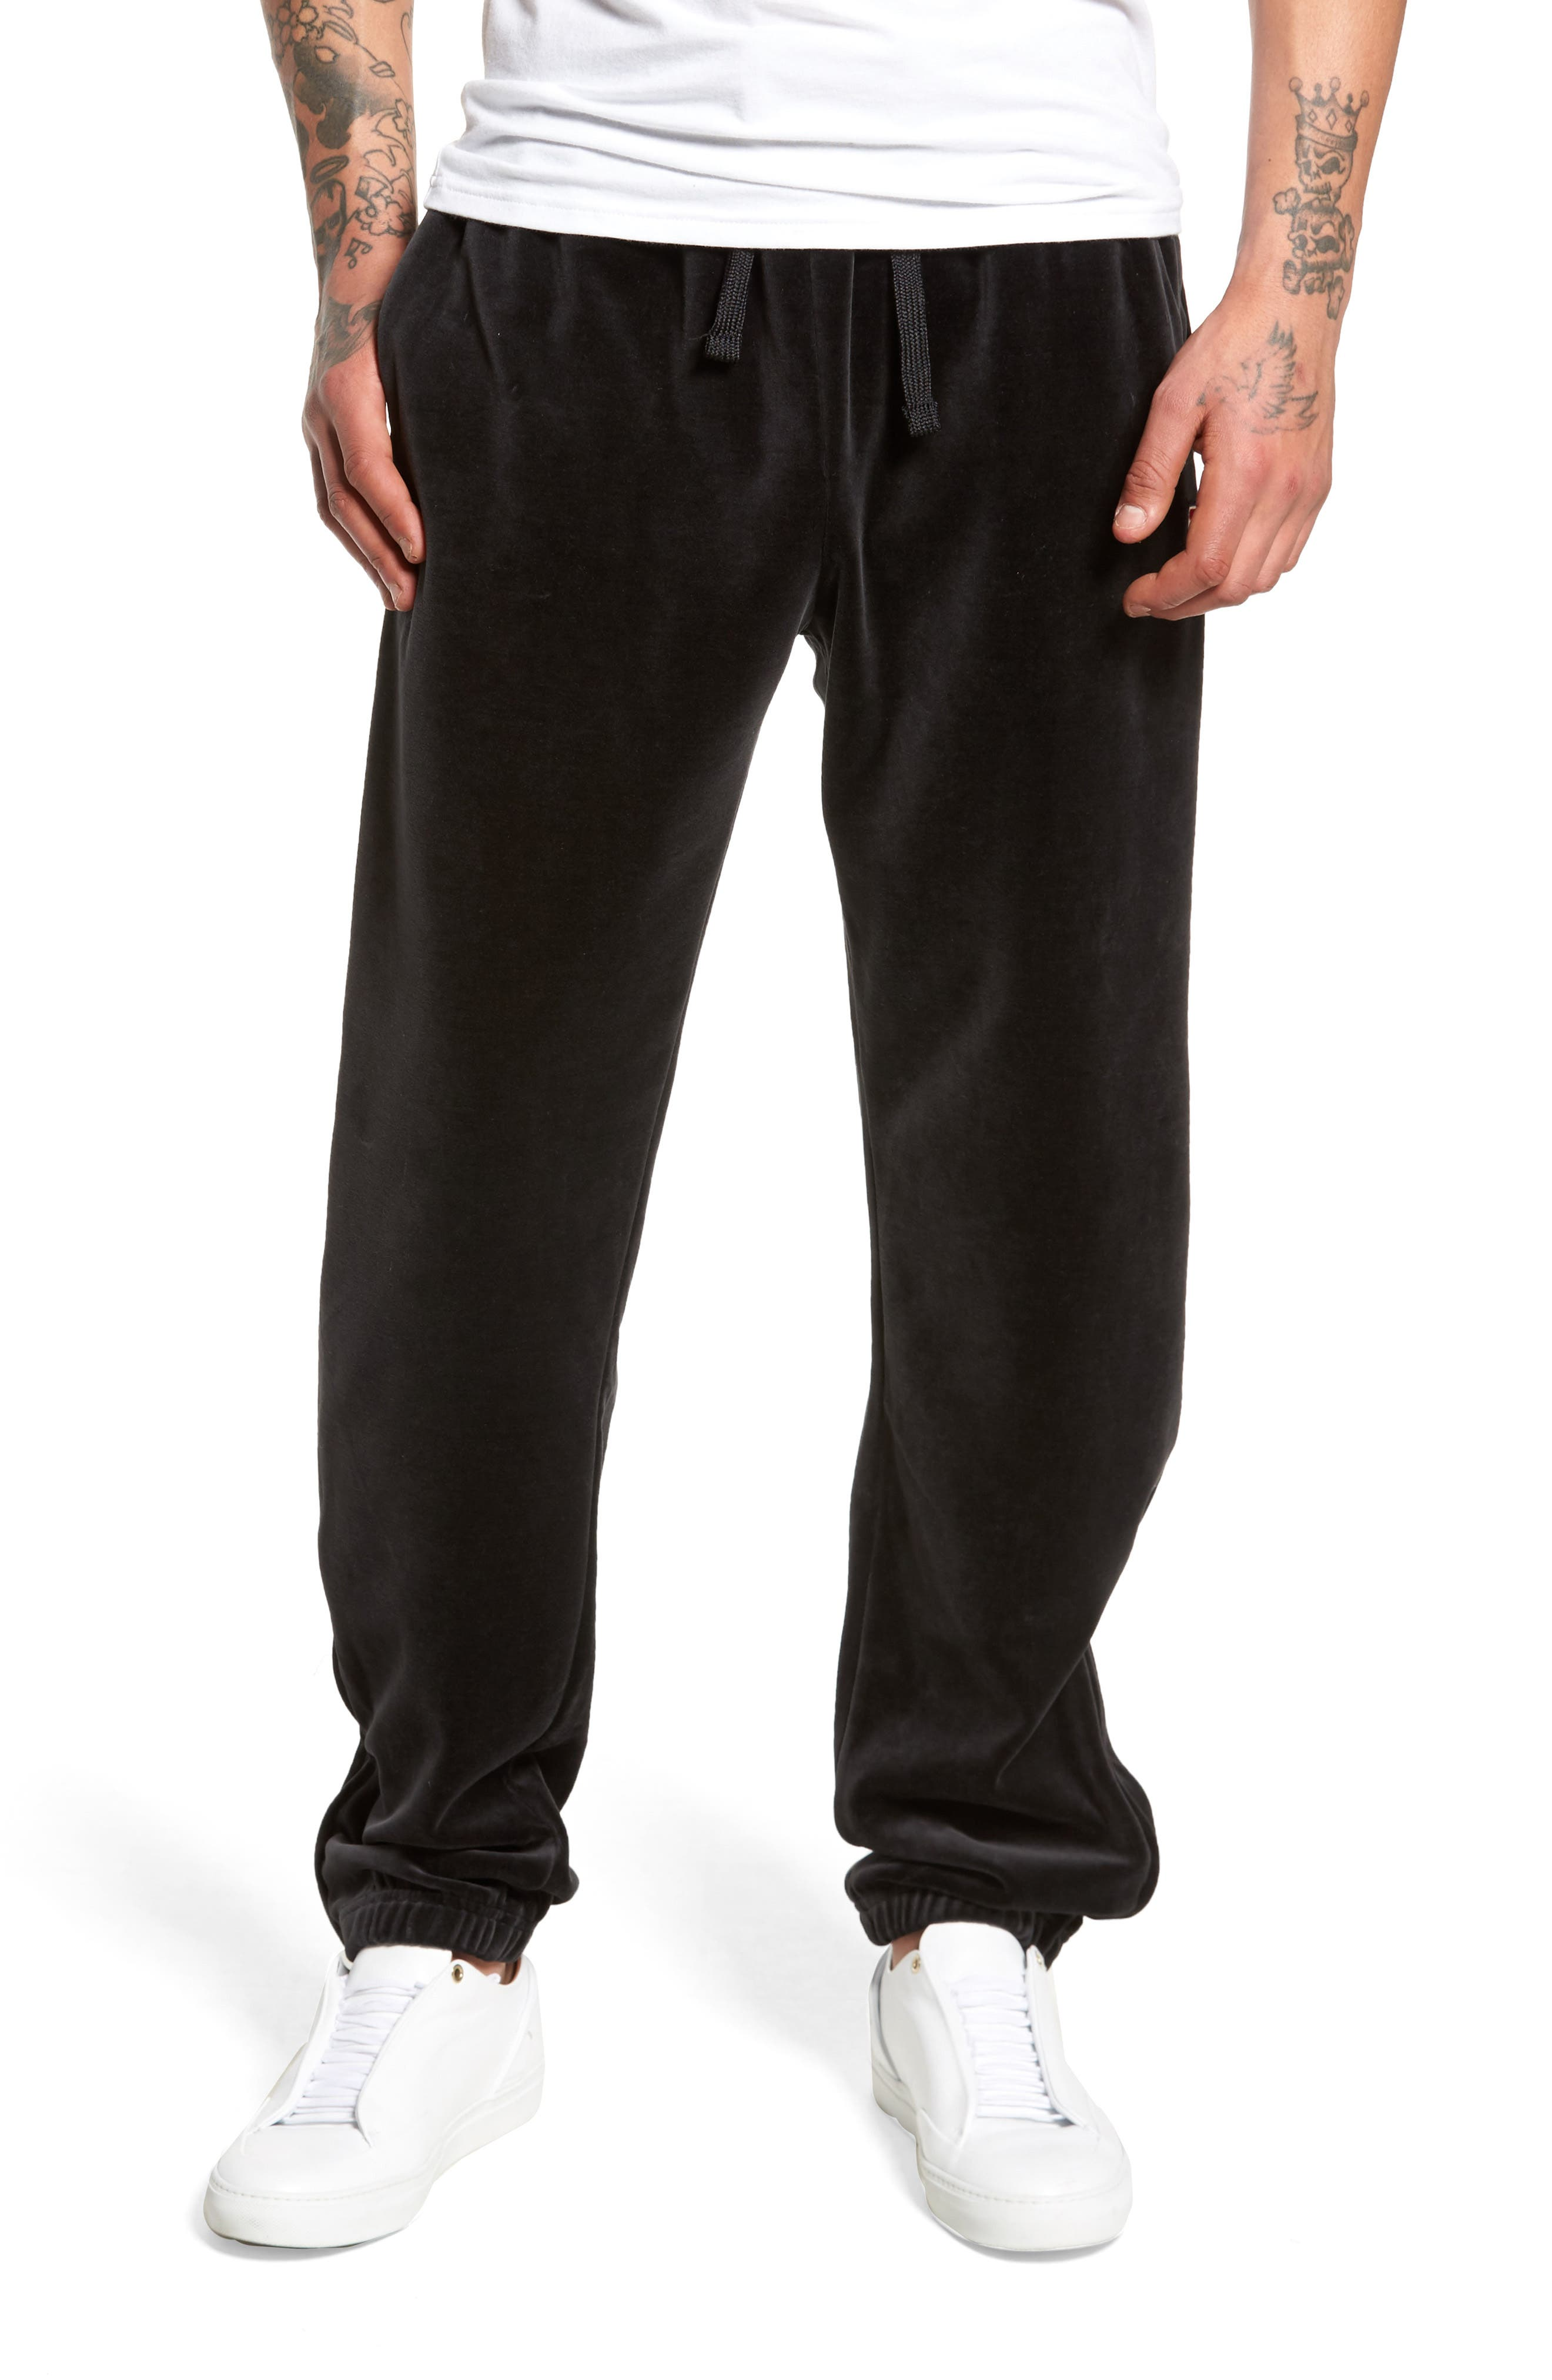 USA Slim Fit Velour Track Pants,                             Main thumbnail 1, color,                             001